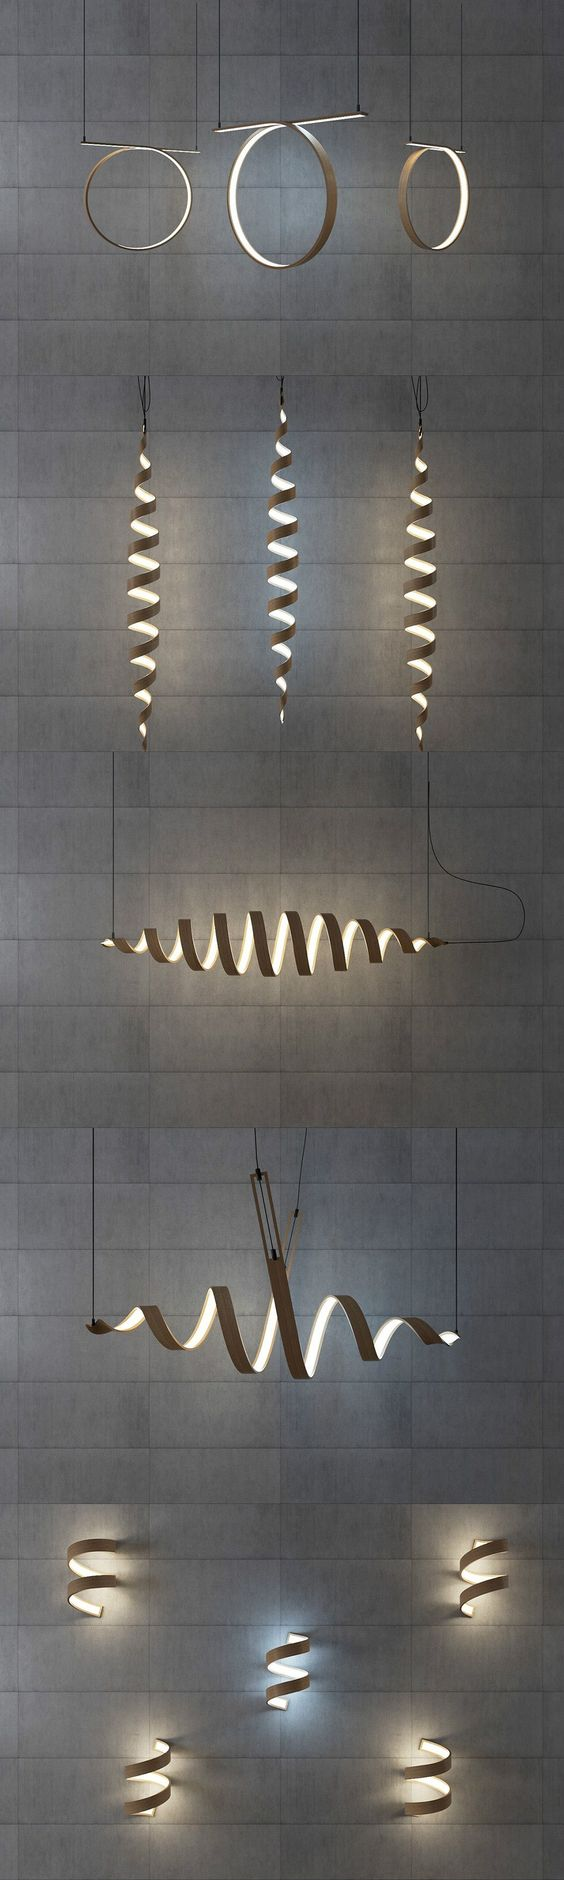 A TWIST OF LIGHT... Read more at Yanko Design